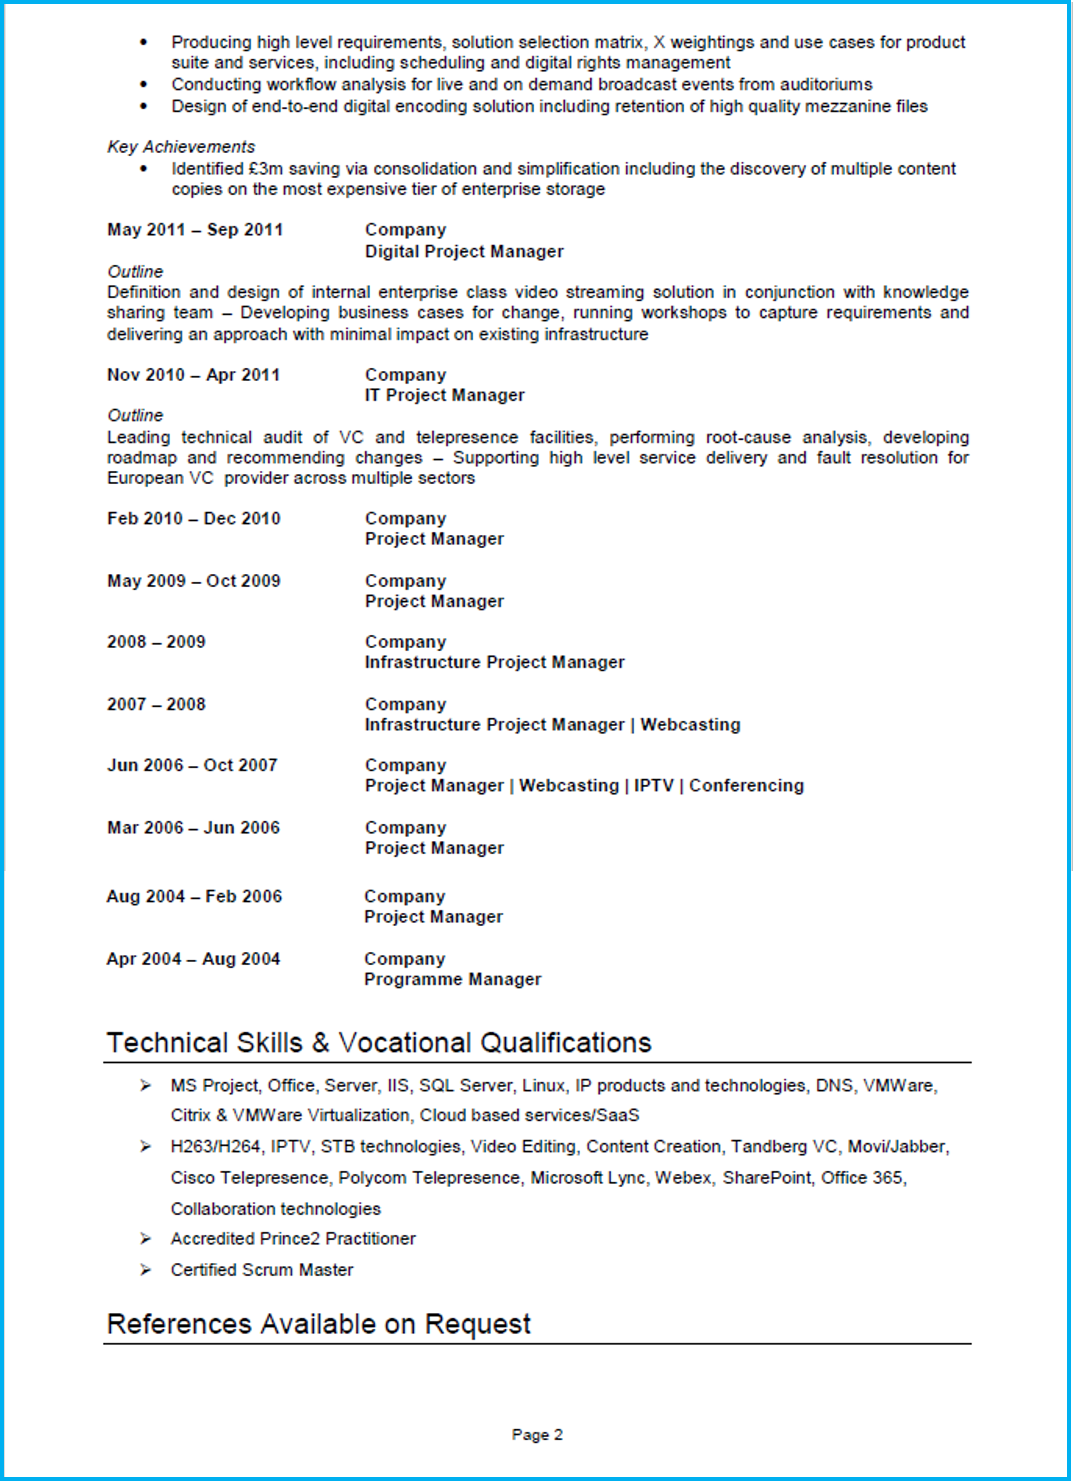 Basic CV template project manager page 2